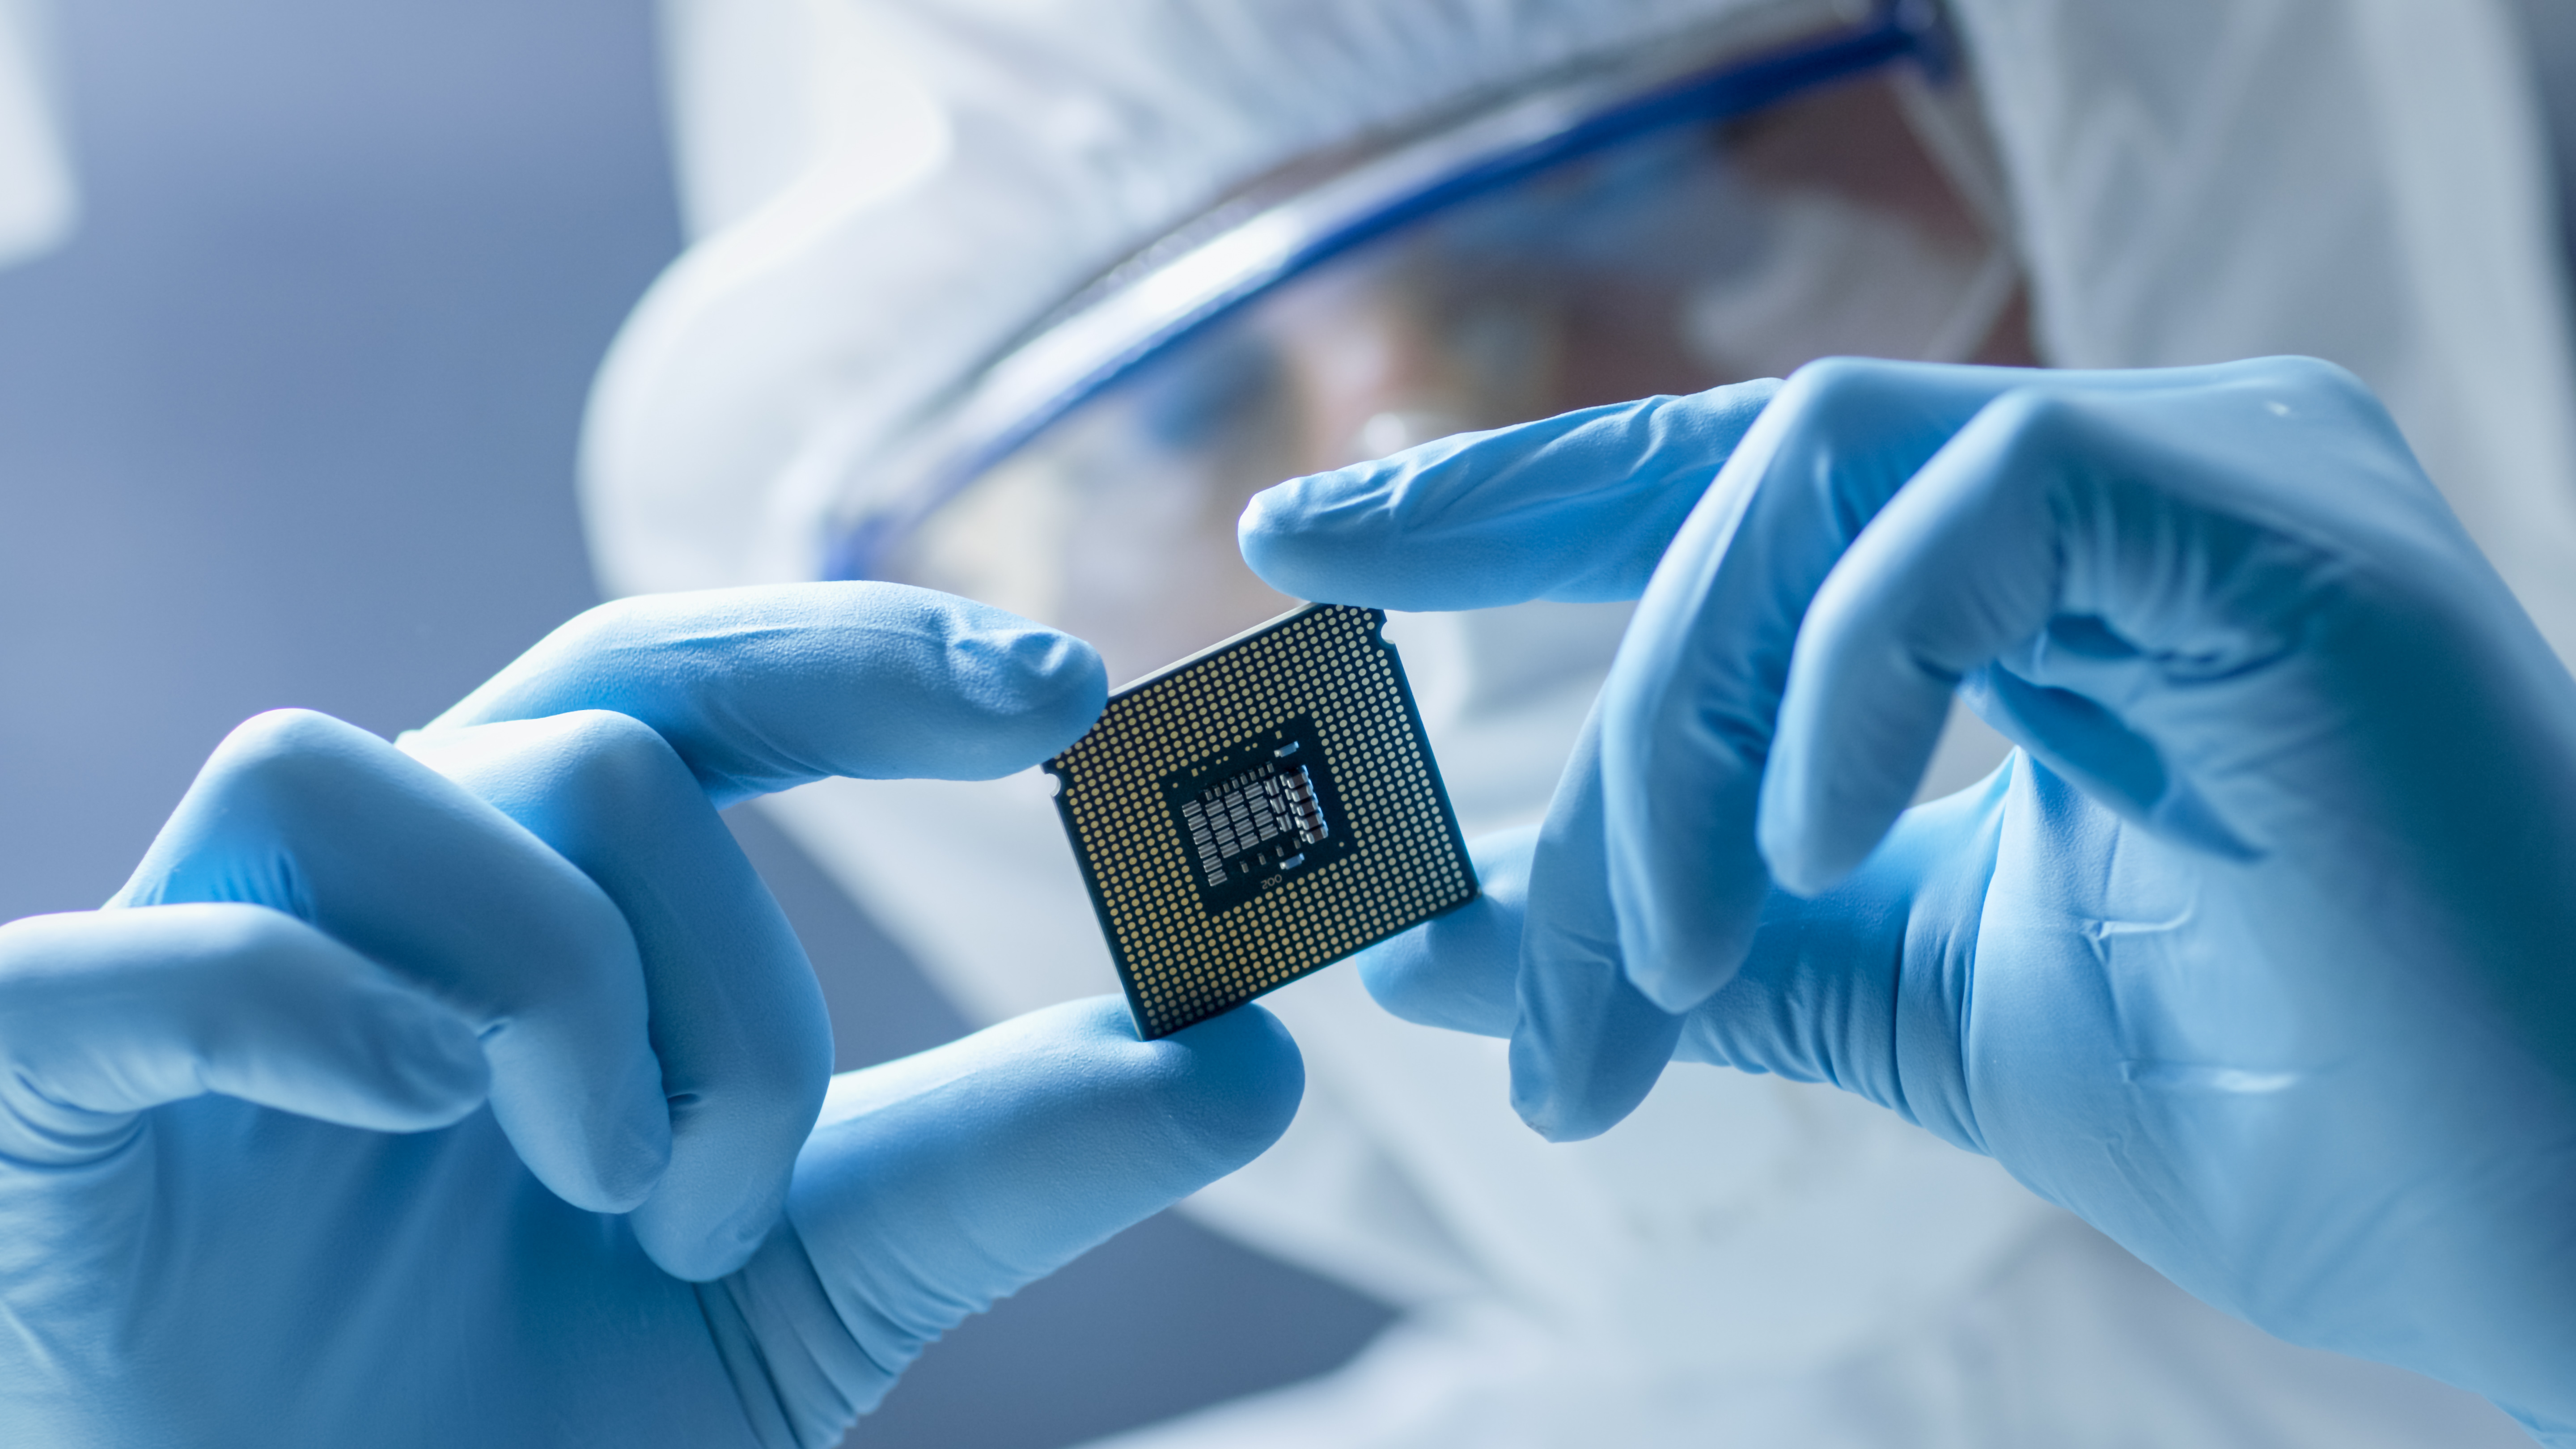 Semiconductors as the new oil: will Taiwan keep pace?